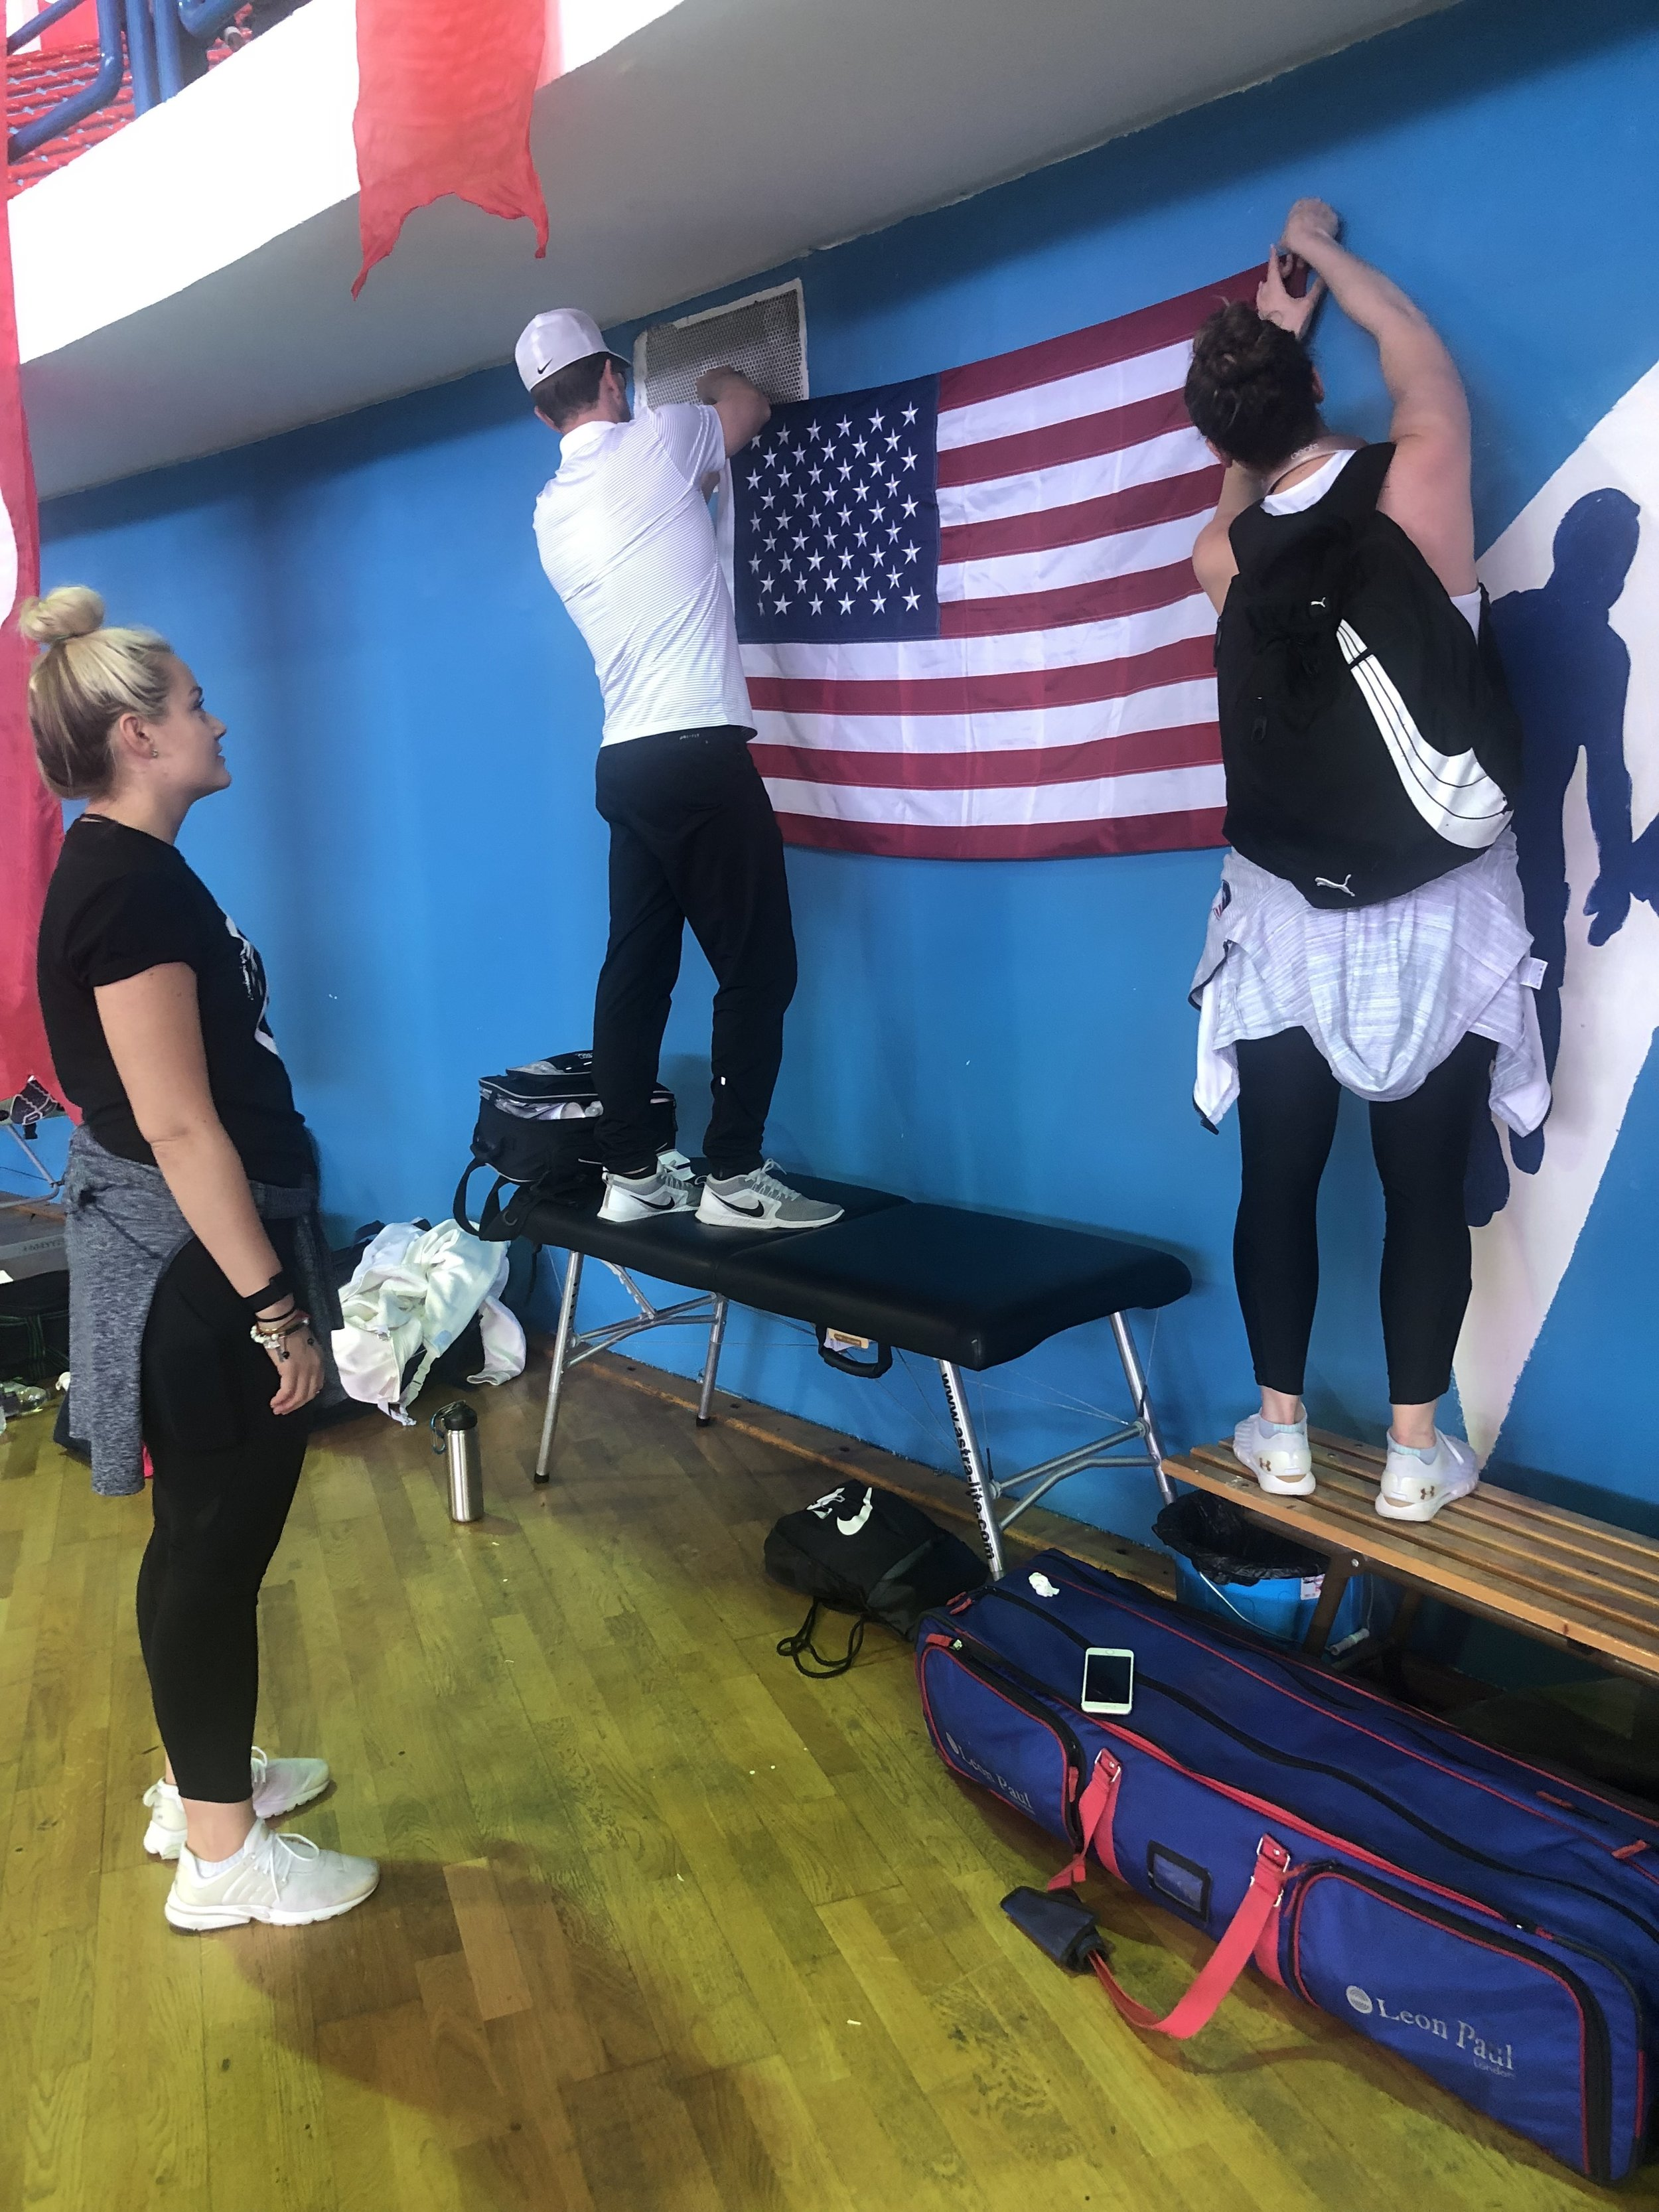 Team USA setting up our warm up area